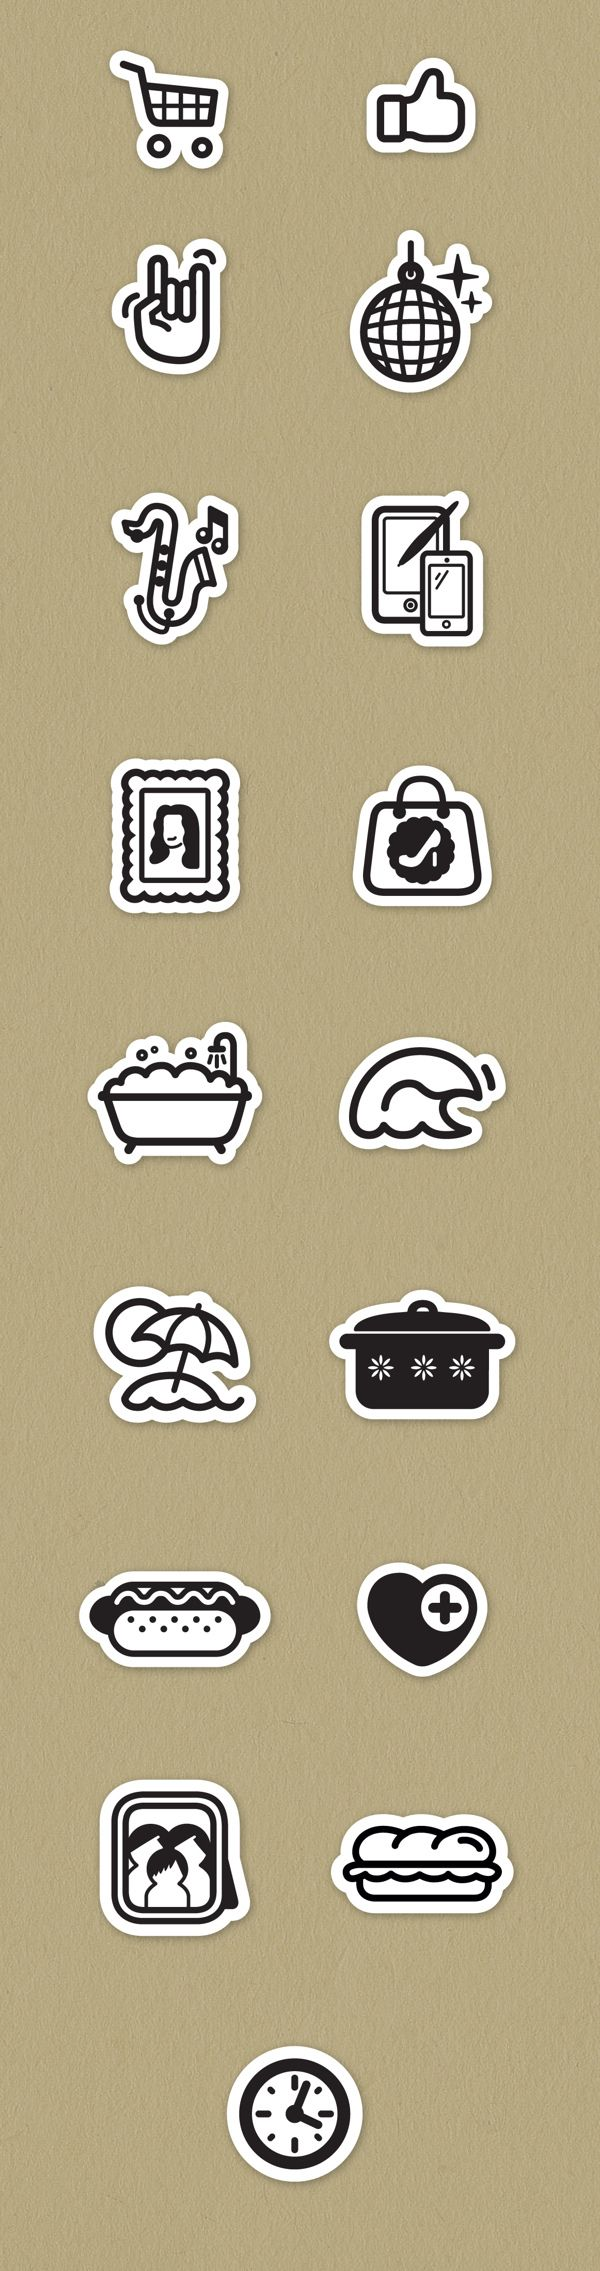 Social Icons by Jorge Dias, via Behance                                                                                                                                                      More